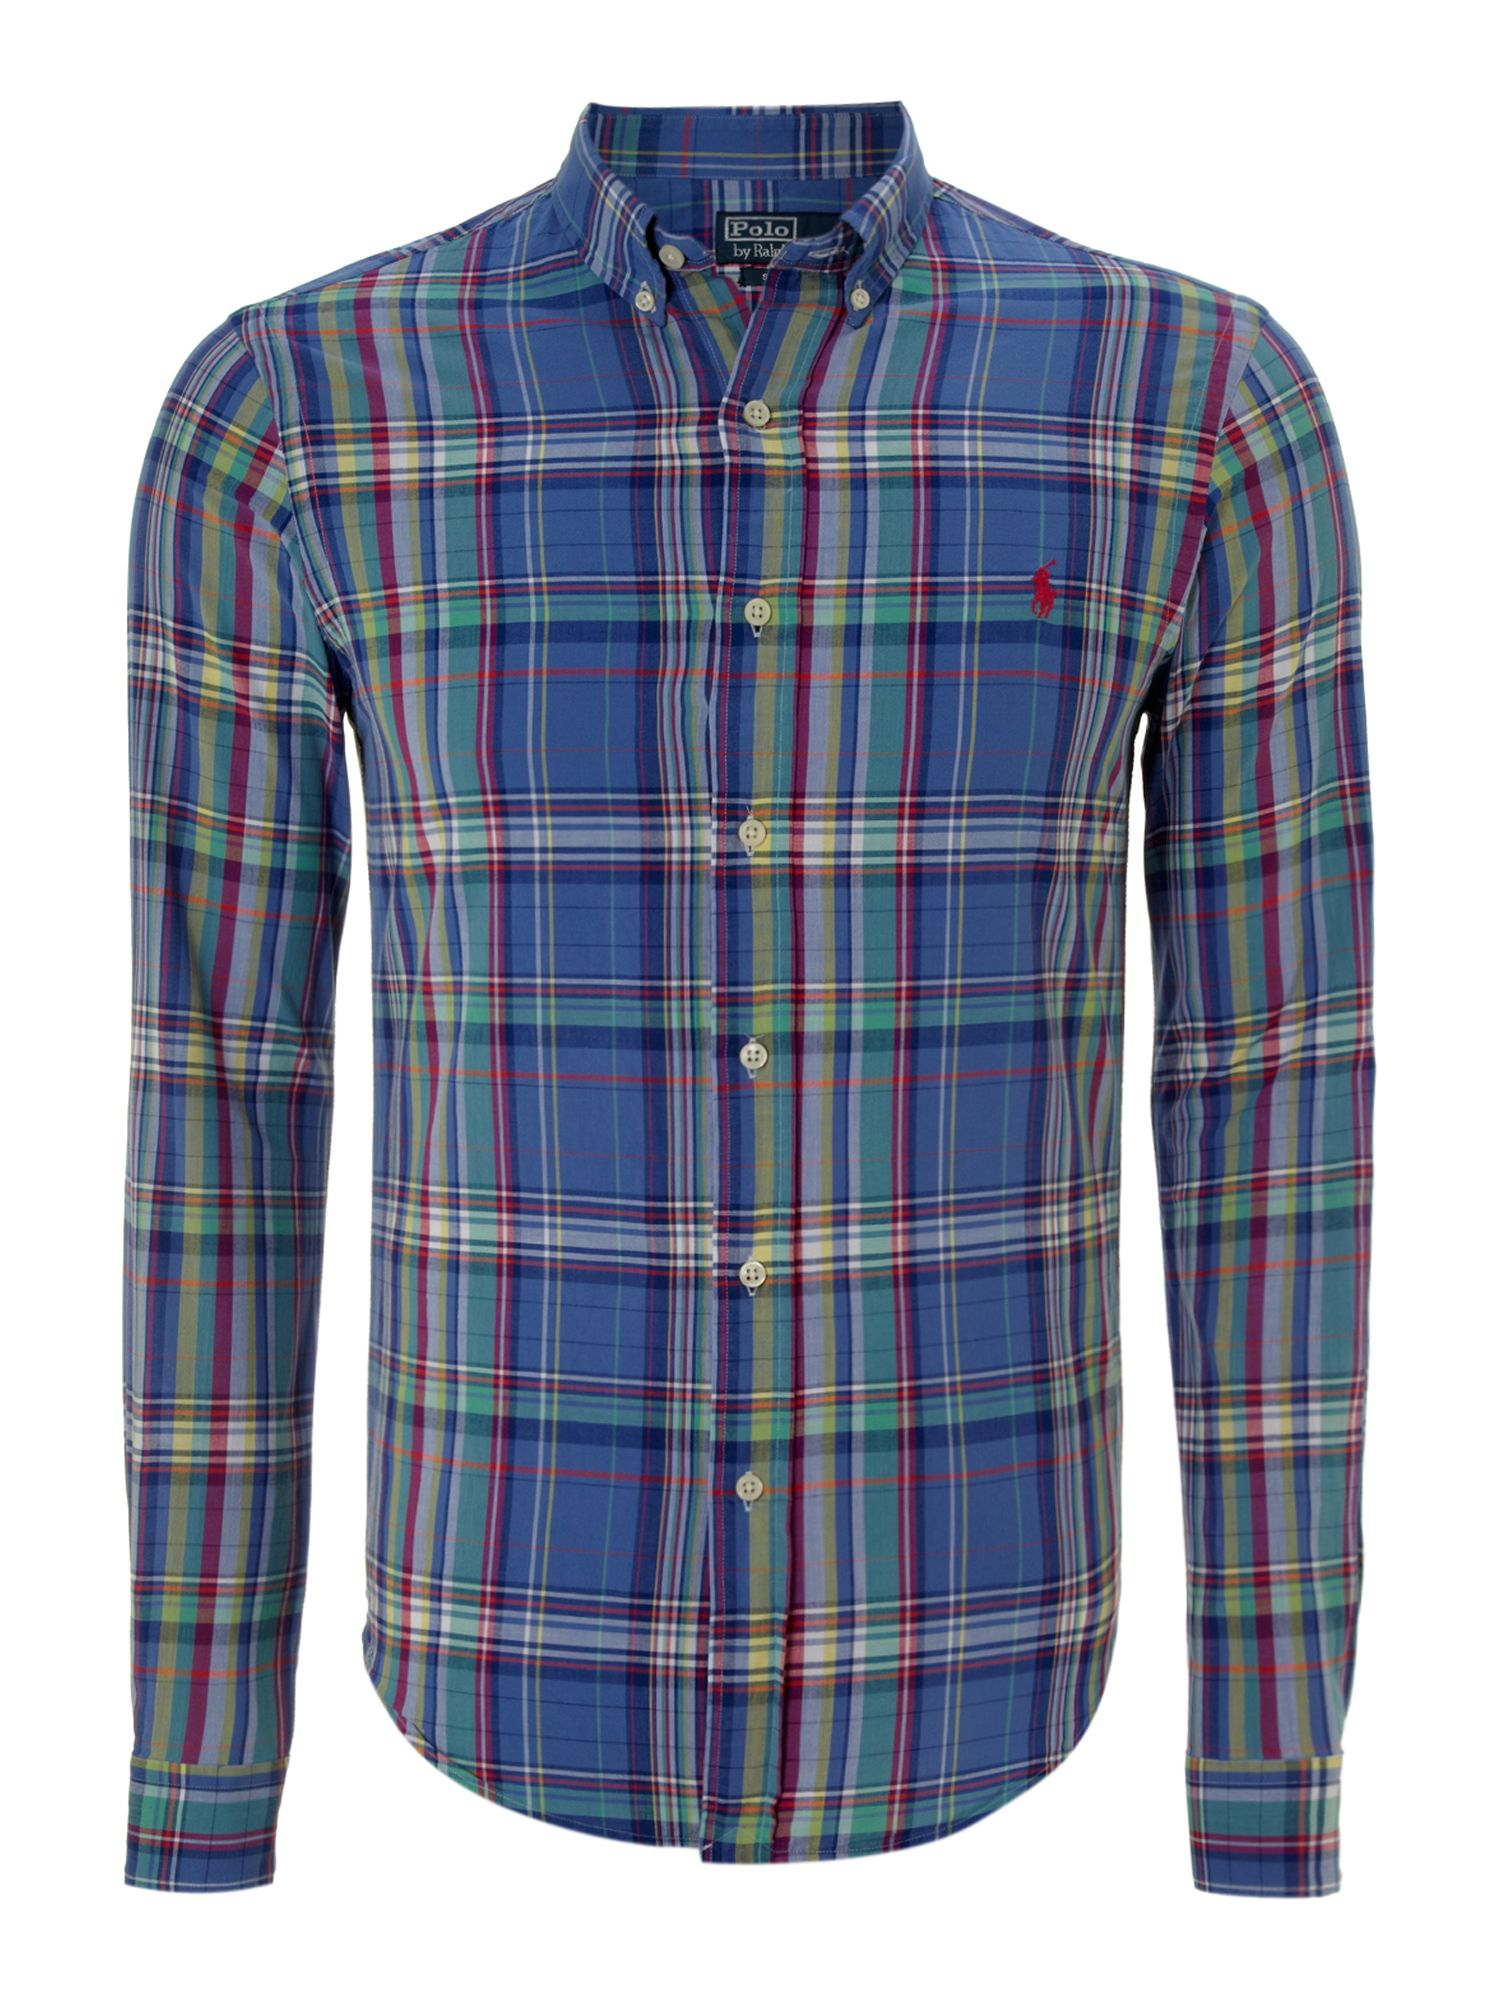 Classic long sleeved checked shirt